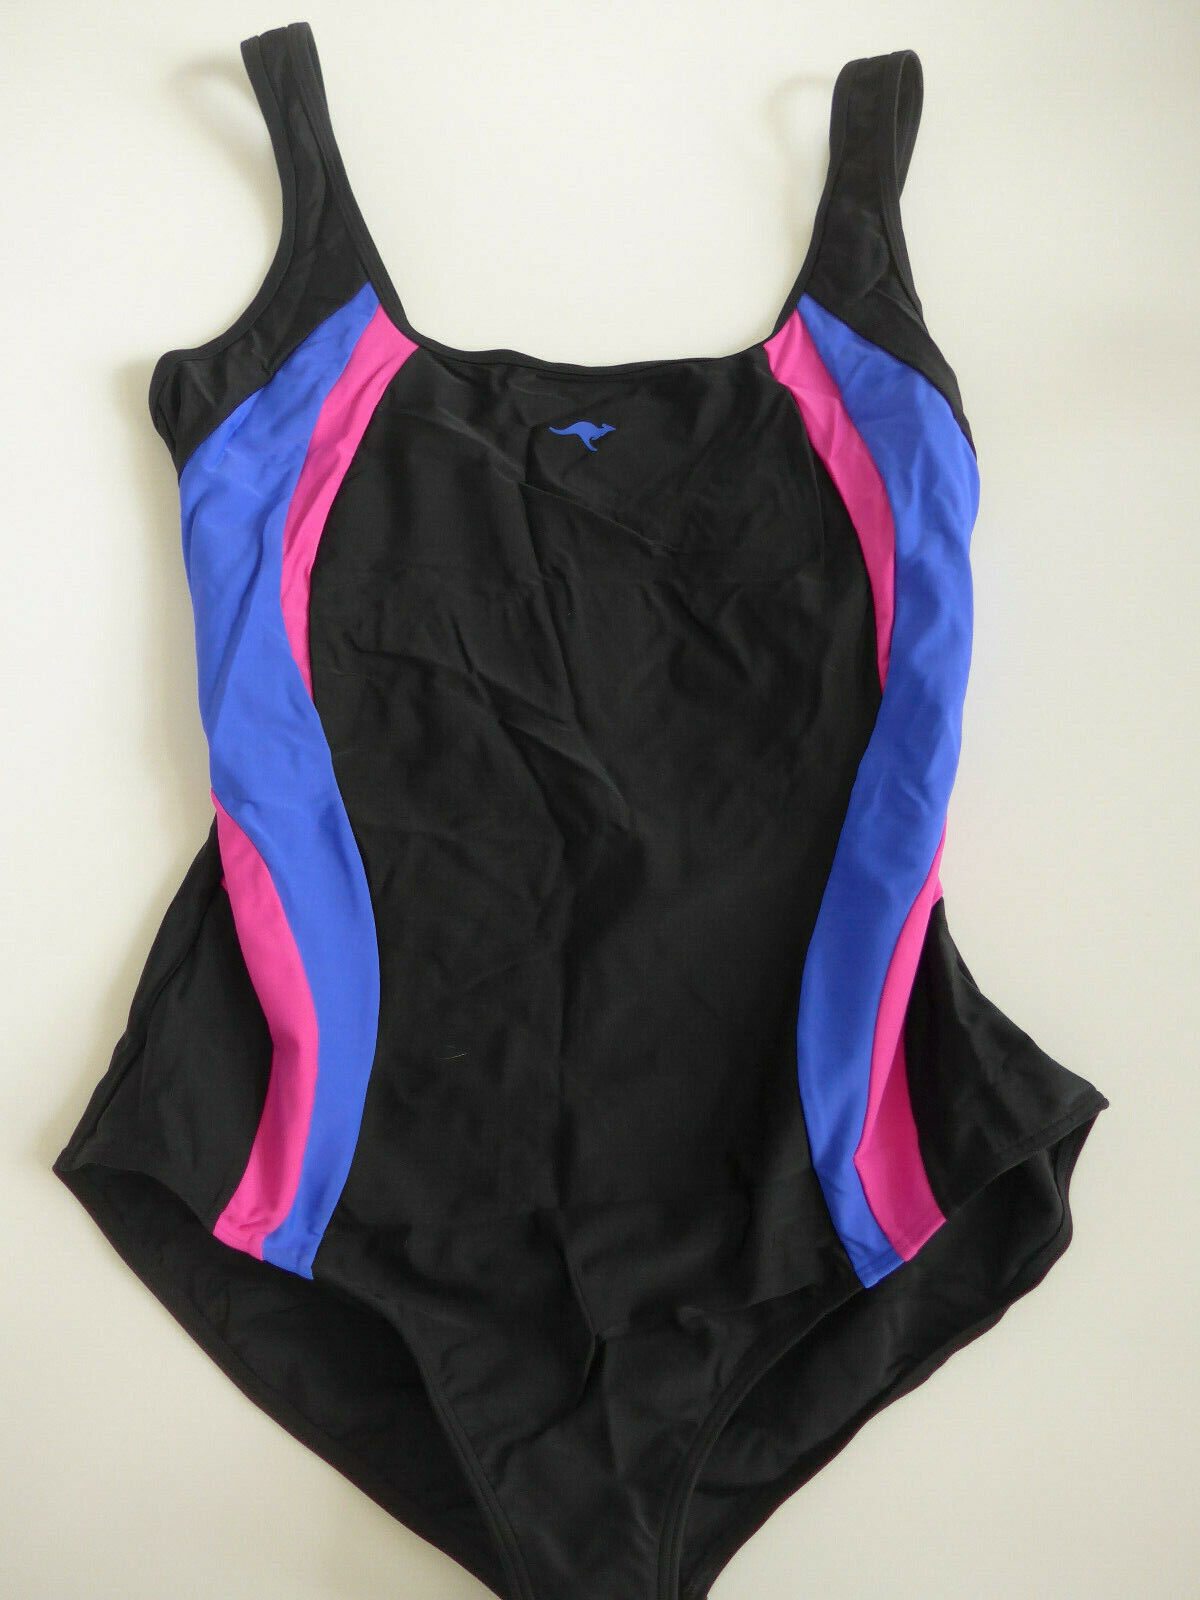 Kangaroos Swimsuit Size 42 - 52 Slimming Suit Black with Pattern (043) NEW